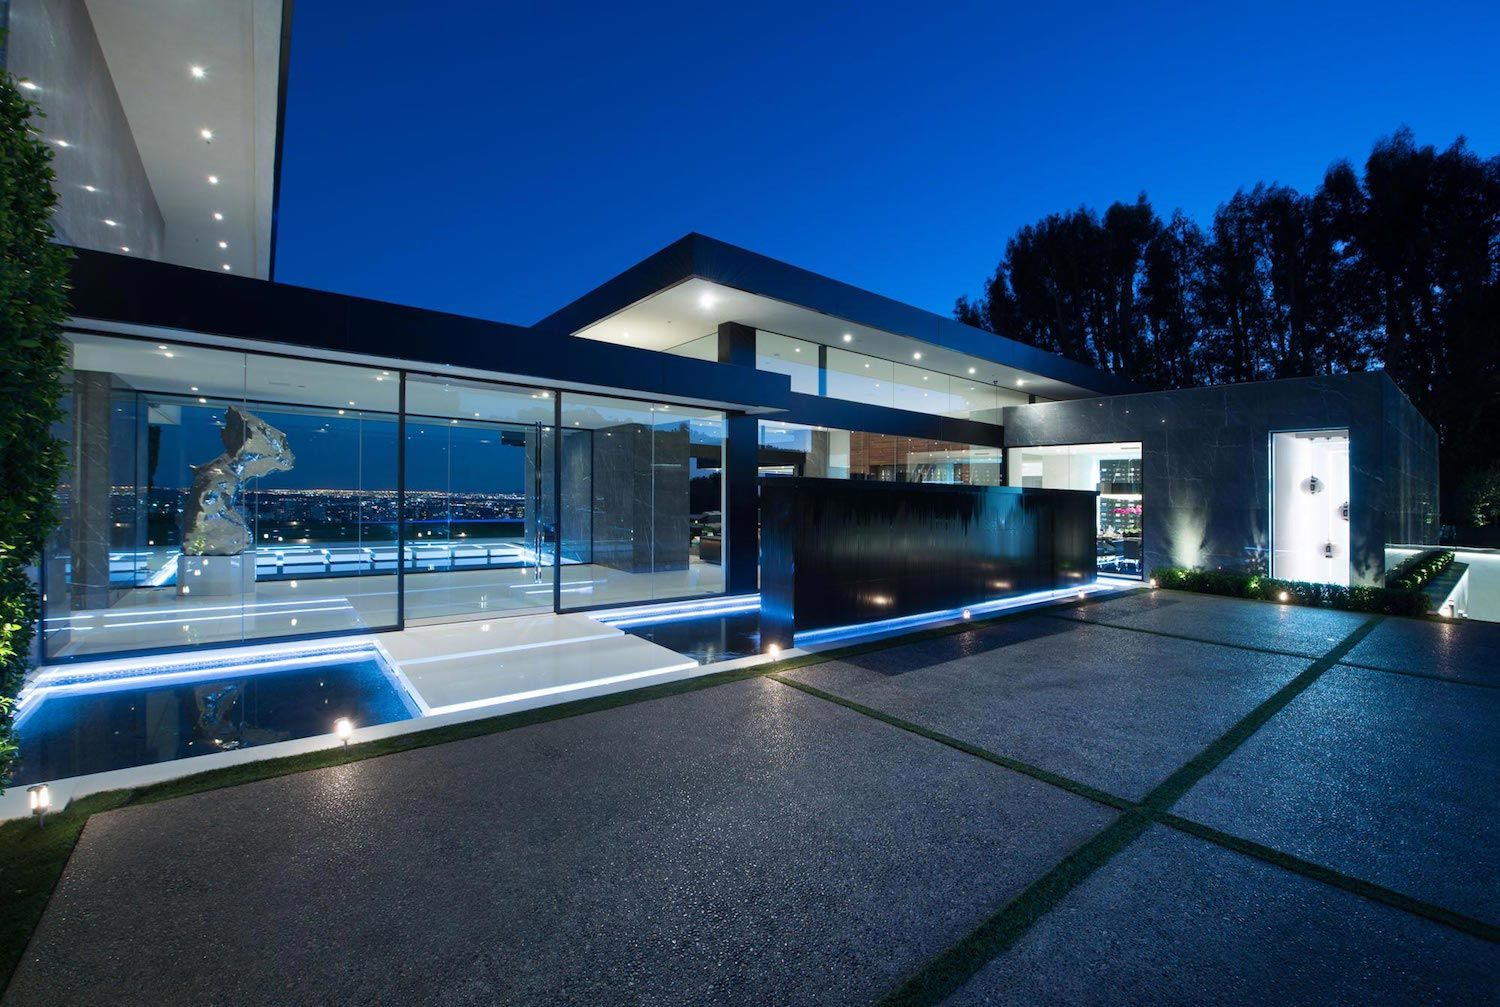 Stradella Ultramodern Masterpiece Home on the Hollywood Hills